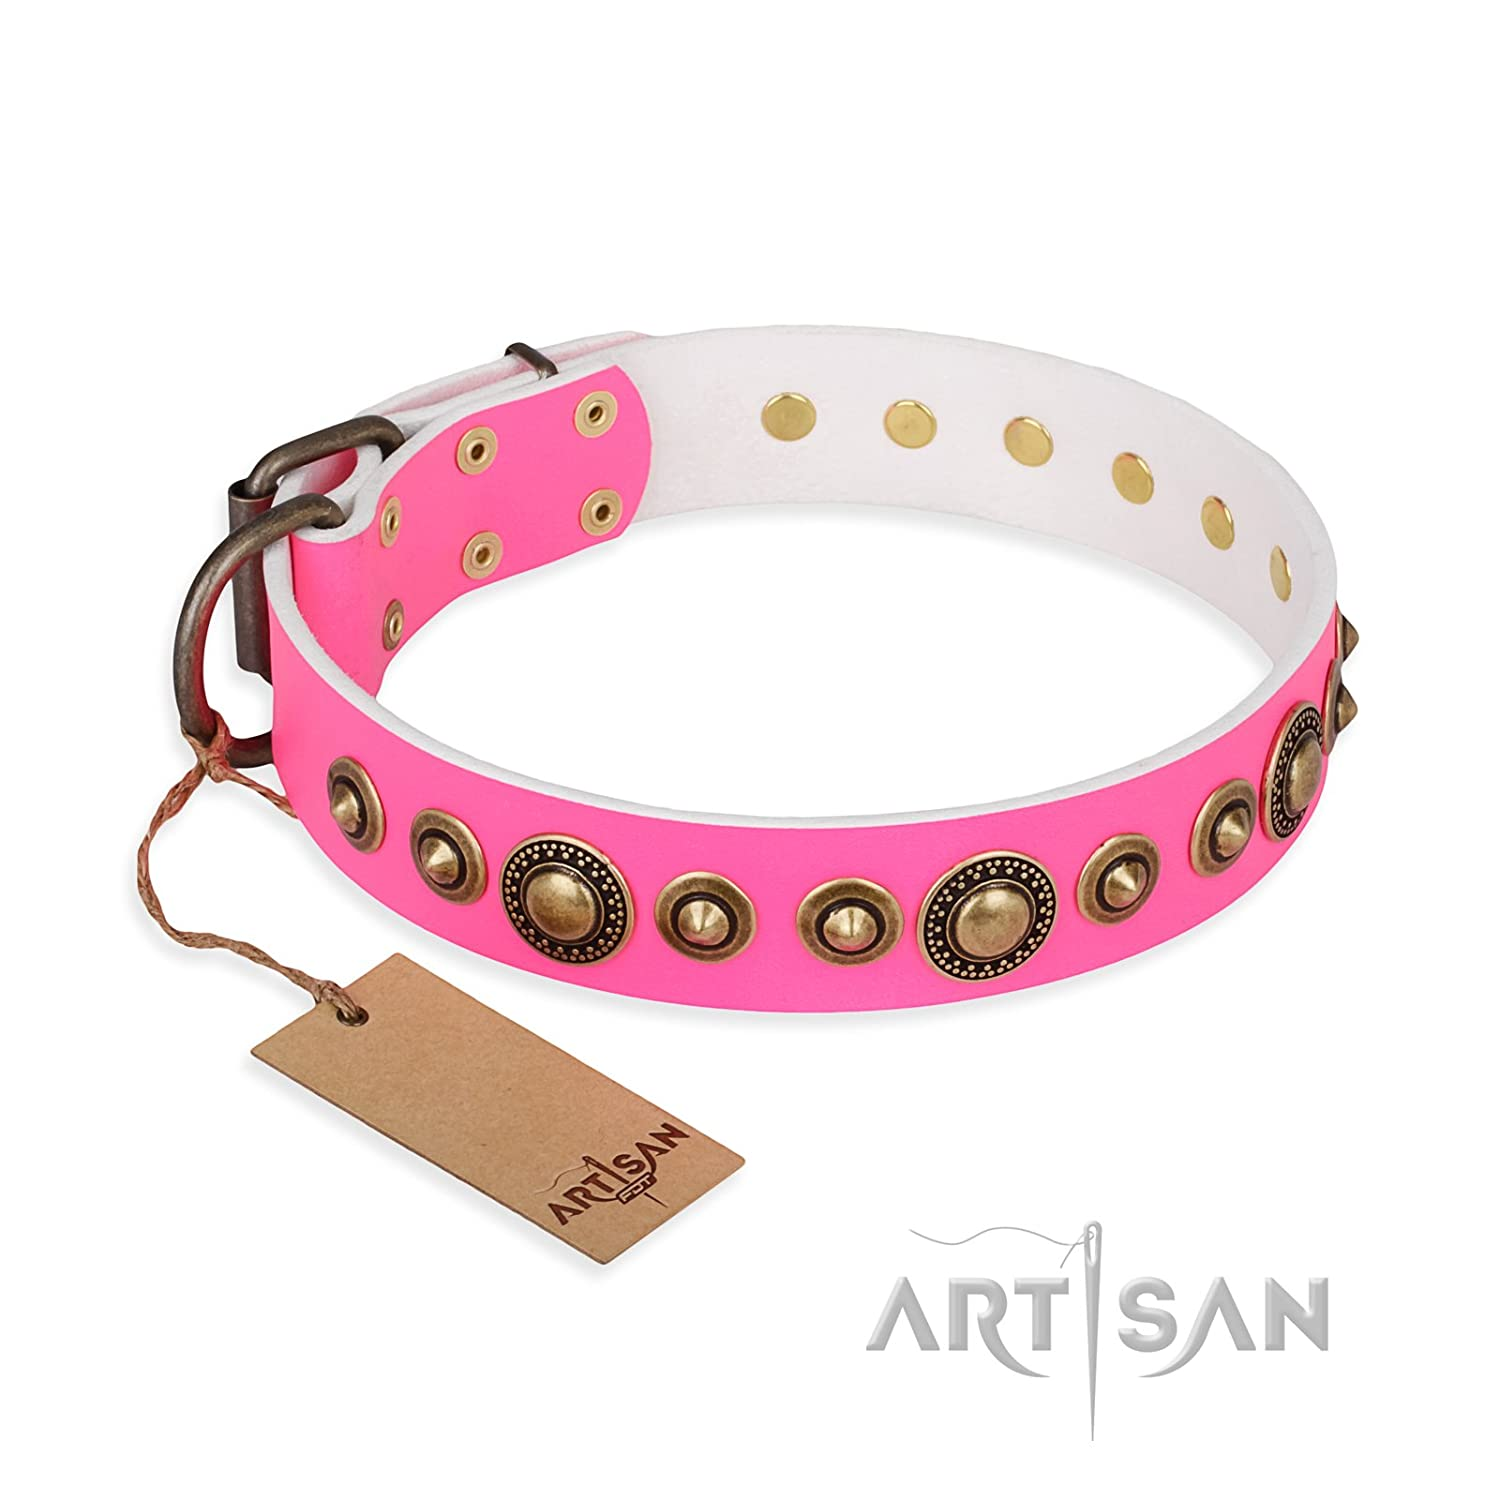 Fits for 31 inch (78cm) dog's neck size FDT Artisan 31 inch Pink Leather Dog Collar with Brass Plated Decor Fancy Schmancy